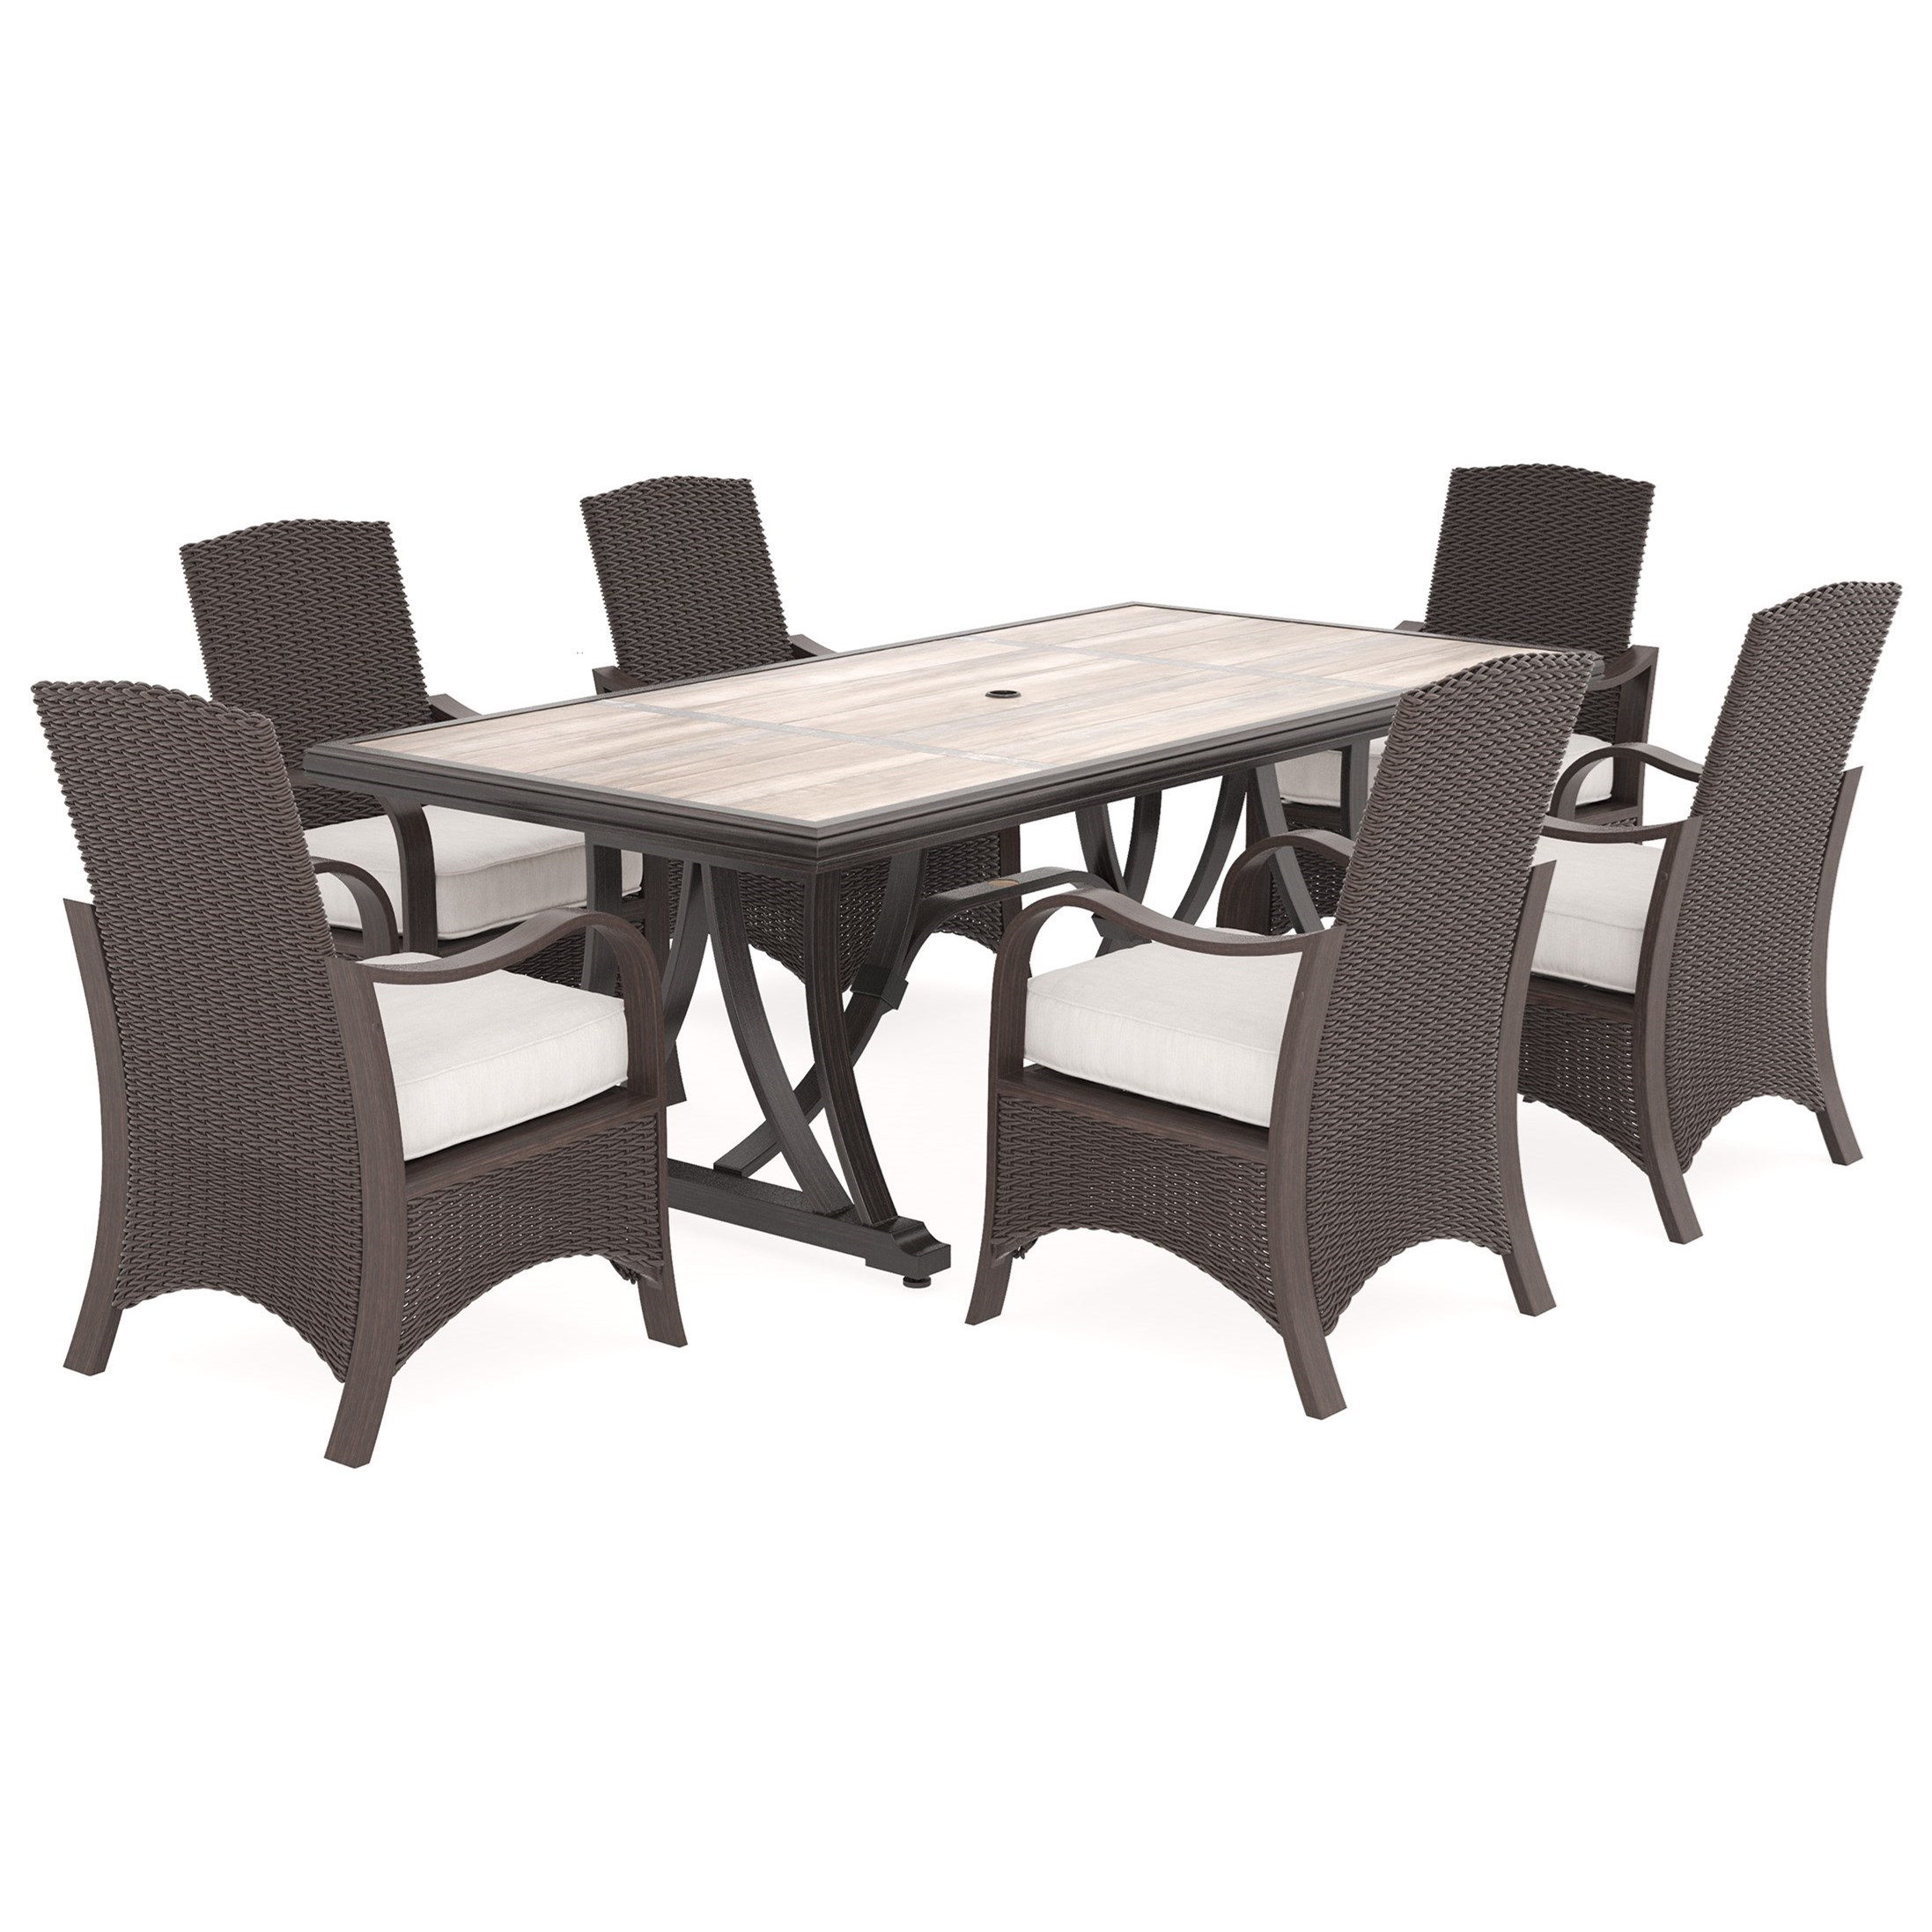 Signature Design by Ashley Marsh Creek 7 Piece Outdoor Dining Set - Item Number: P775-625+3x601A